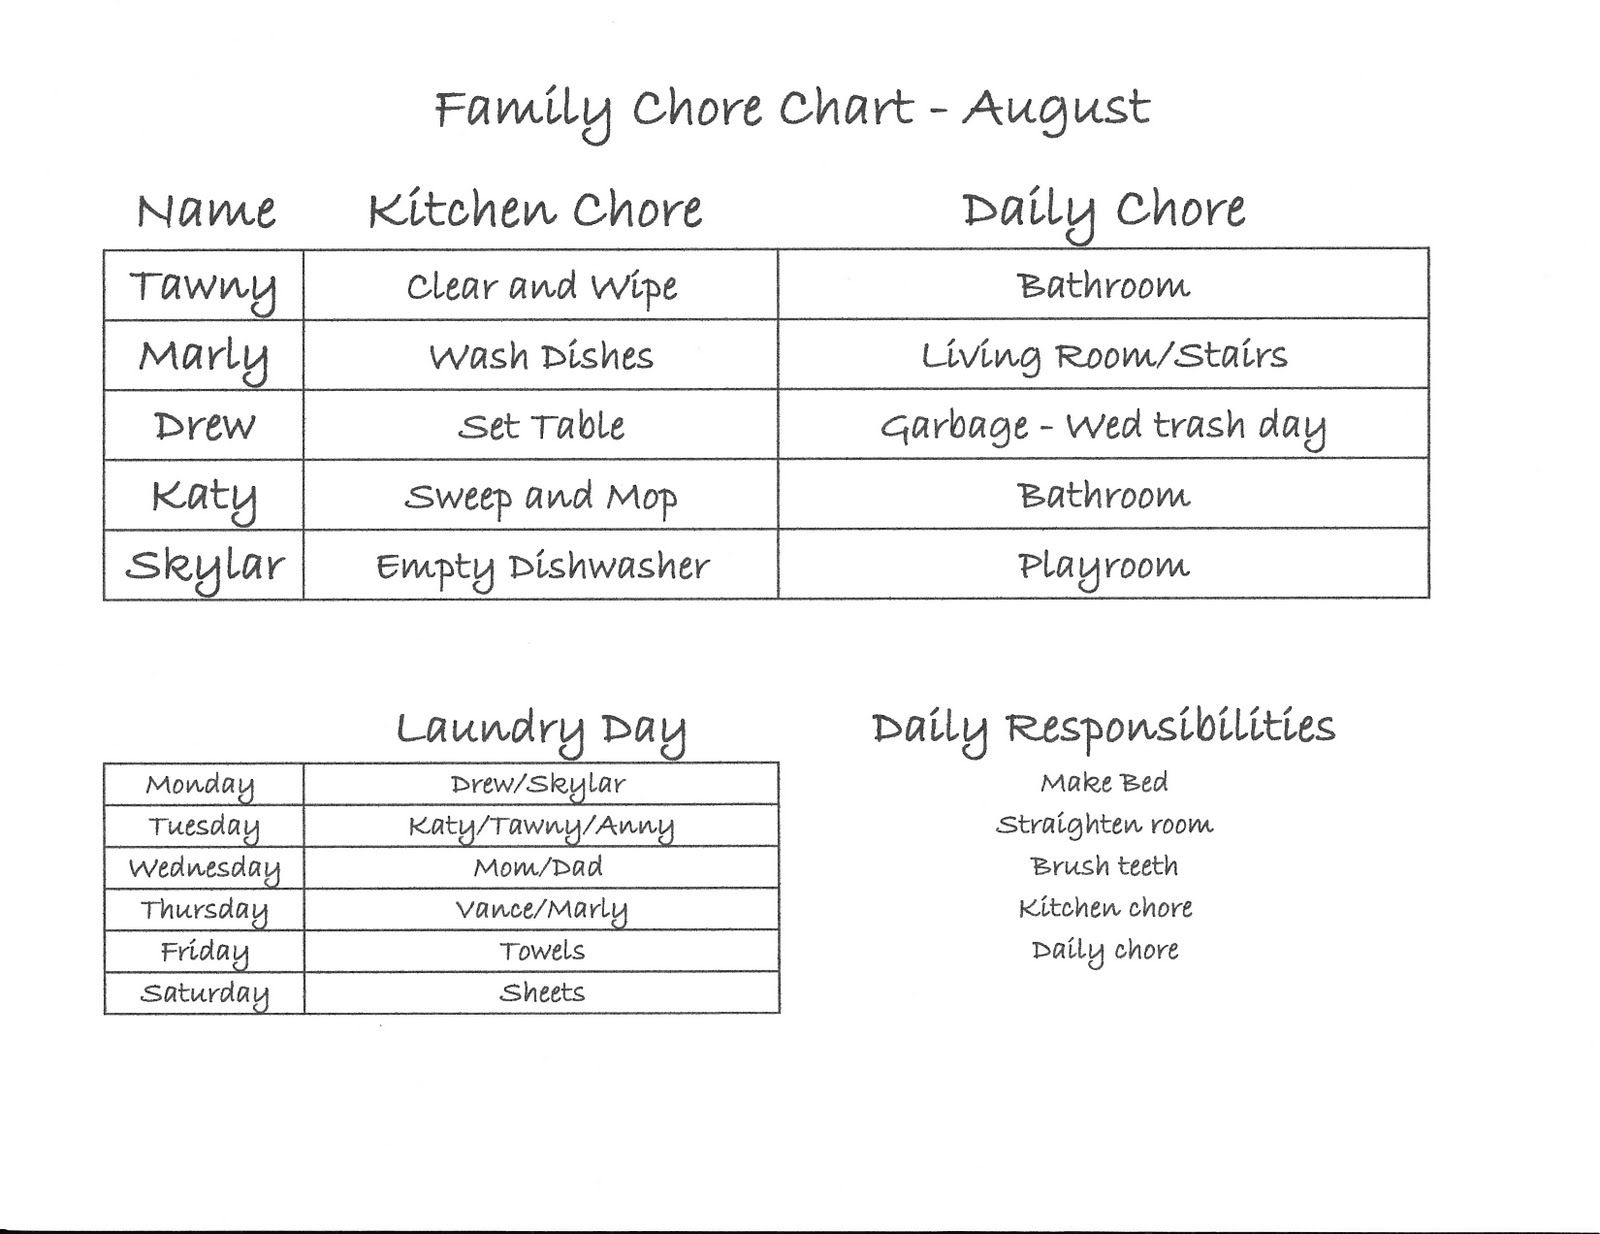 Downloadable Family Chore Chart Template  Download Blank Word